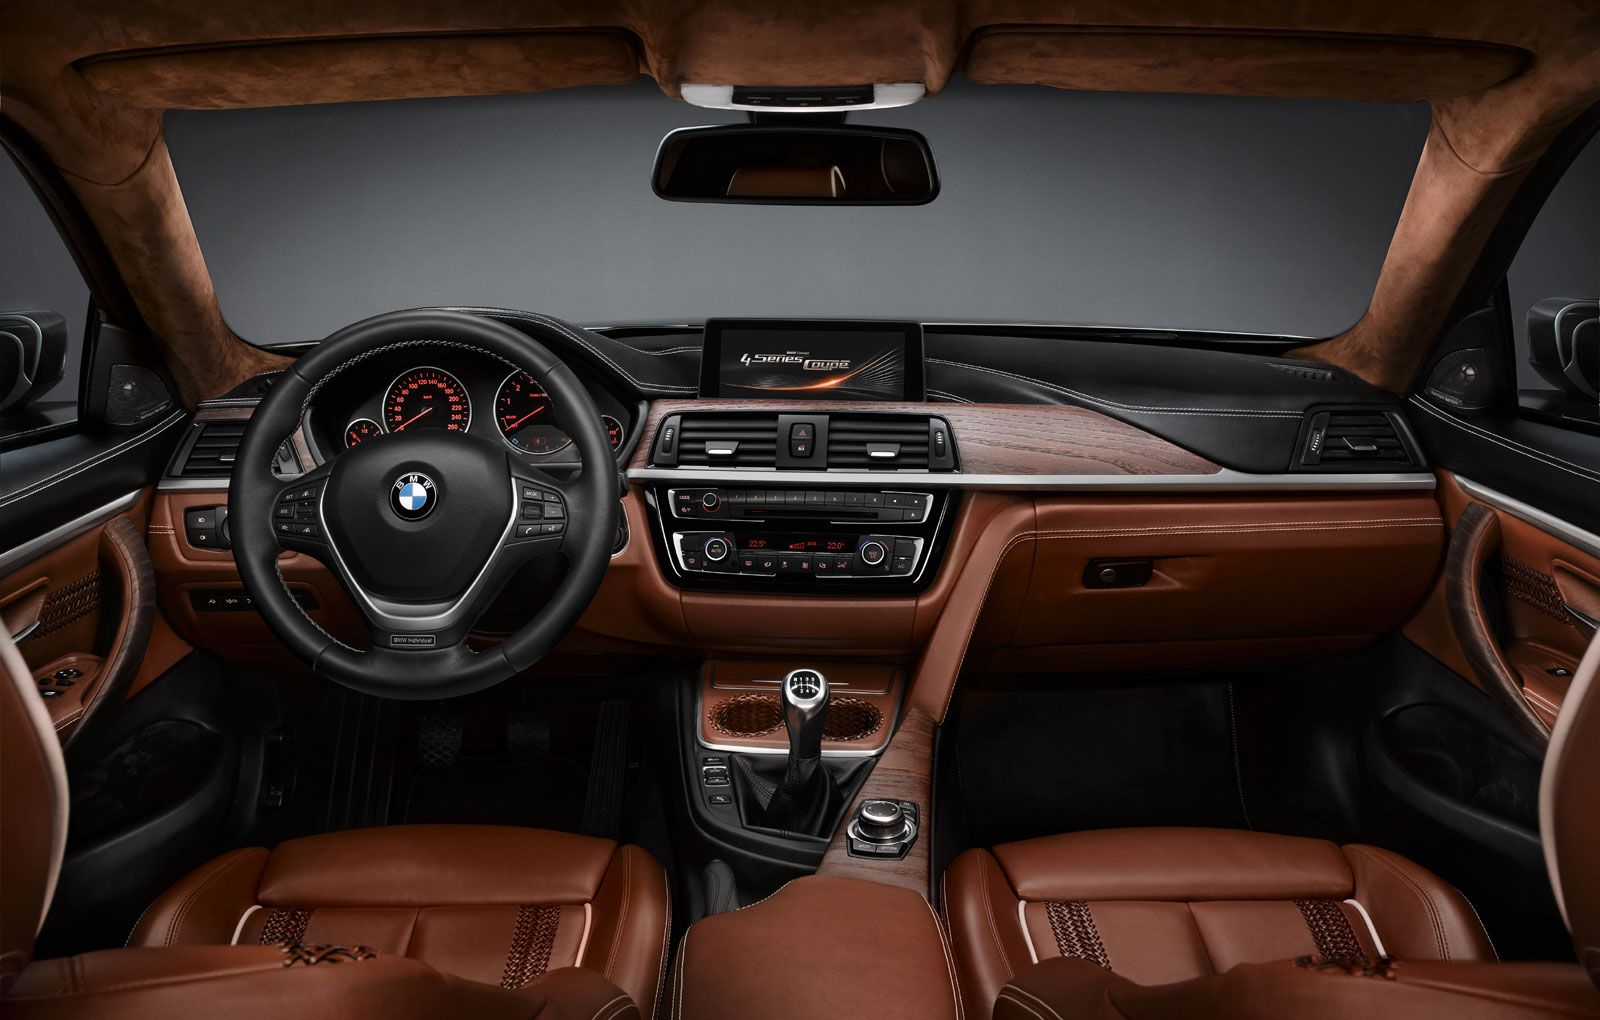 Description watch the all new 2014 bmw 4 series gran coupe drive a long a mountain range with autom moreototv watch the all new 2014 bmw 4 series gran coupe